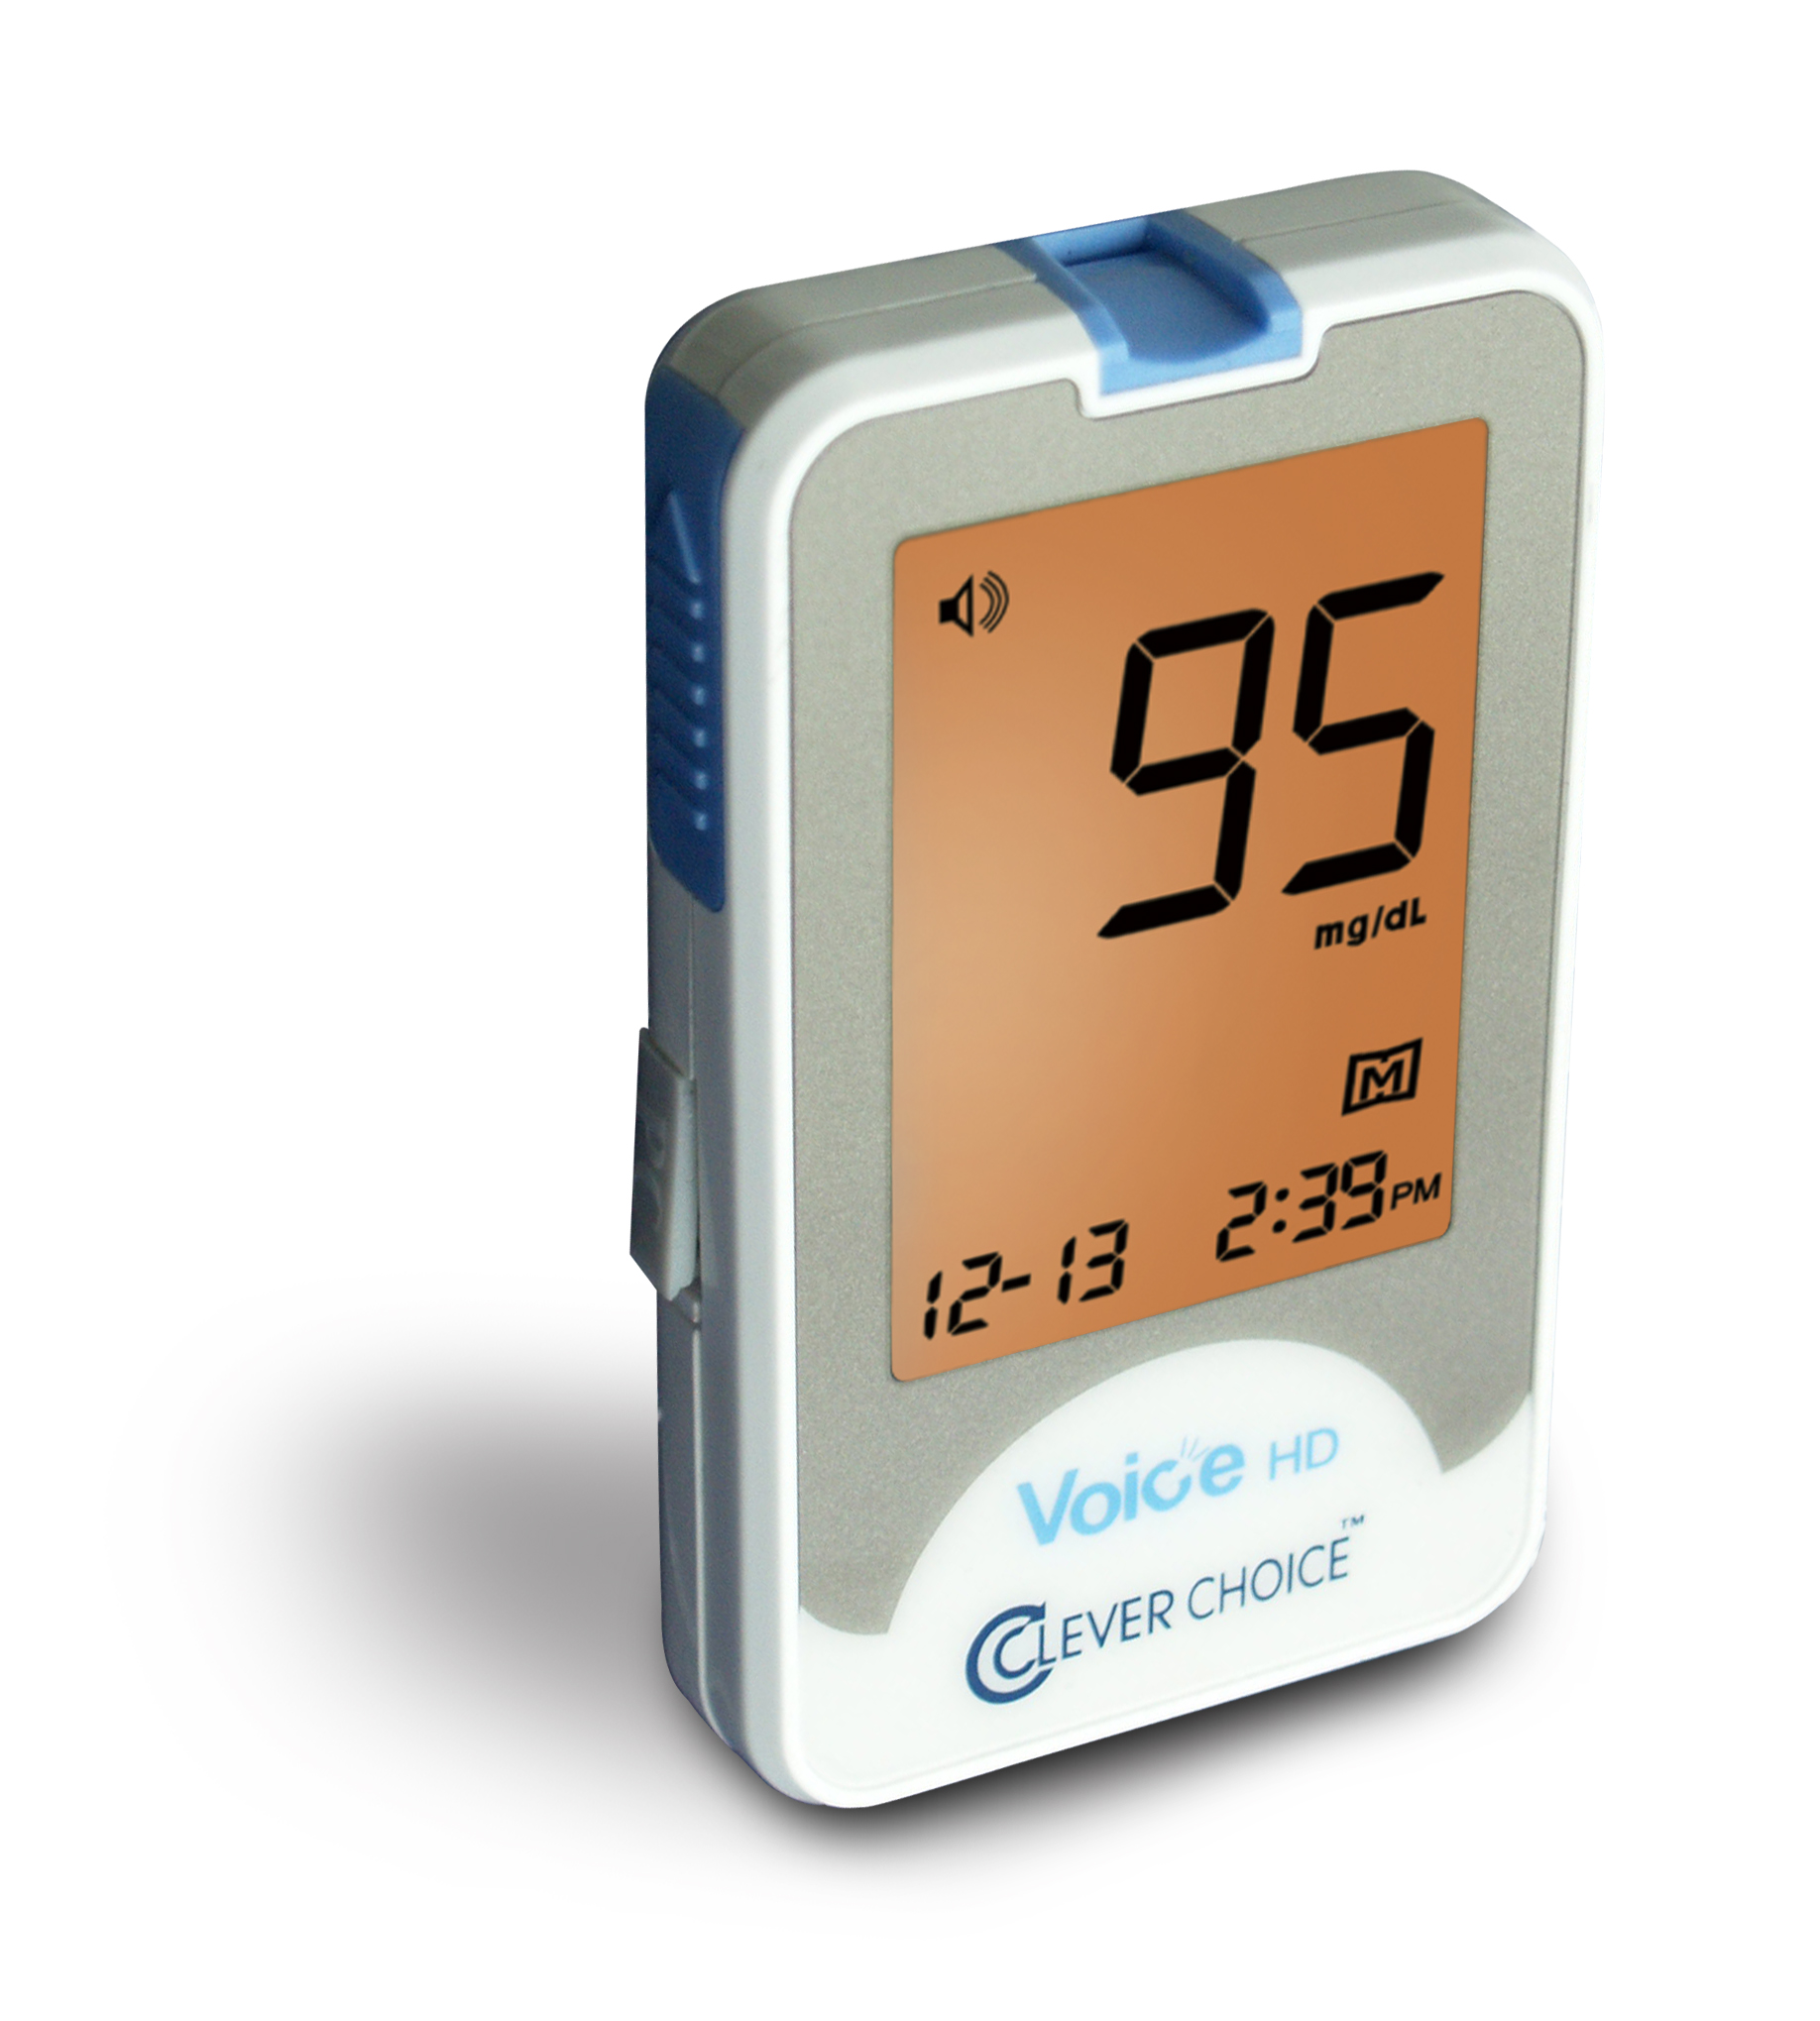 Clever Choice Auto Code Voice Blood Glucose Monitoring System